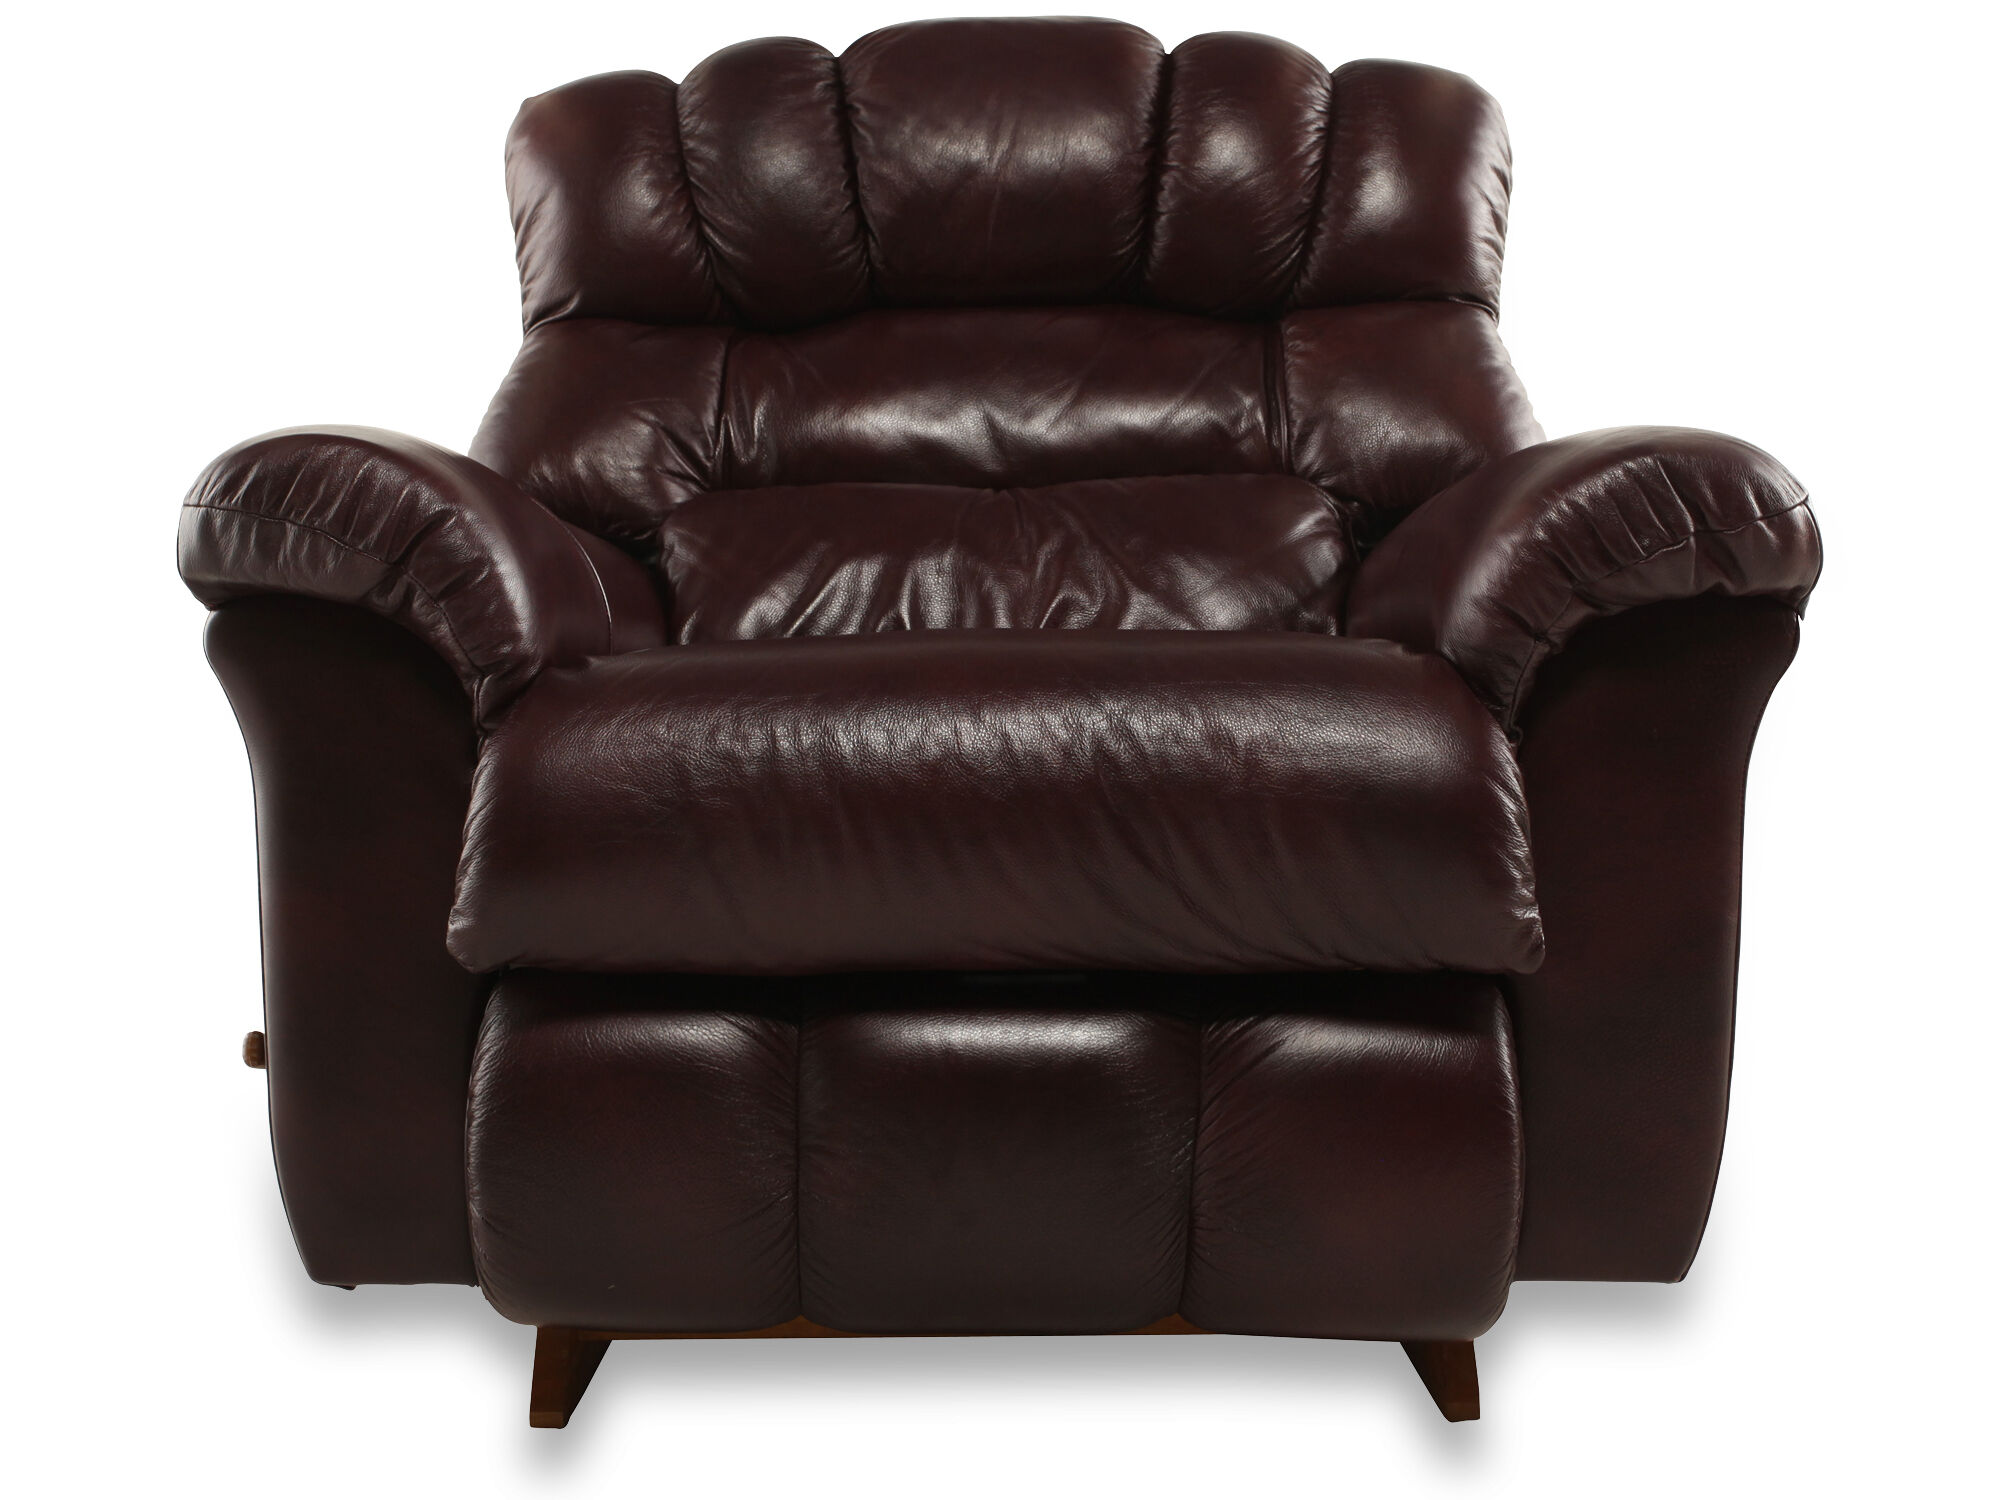 Leather Reclining Chair La Z Boy Crandell Bordeaux Leather Recliner Mathis